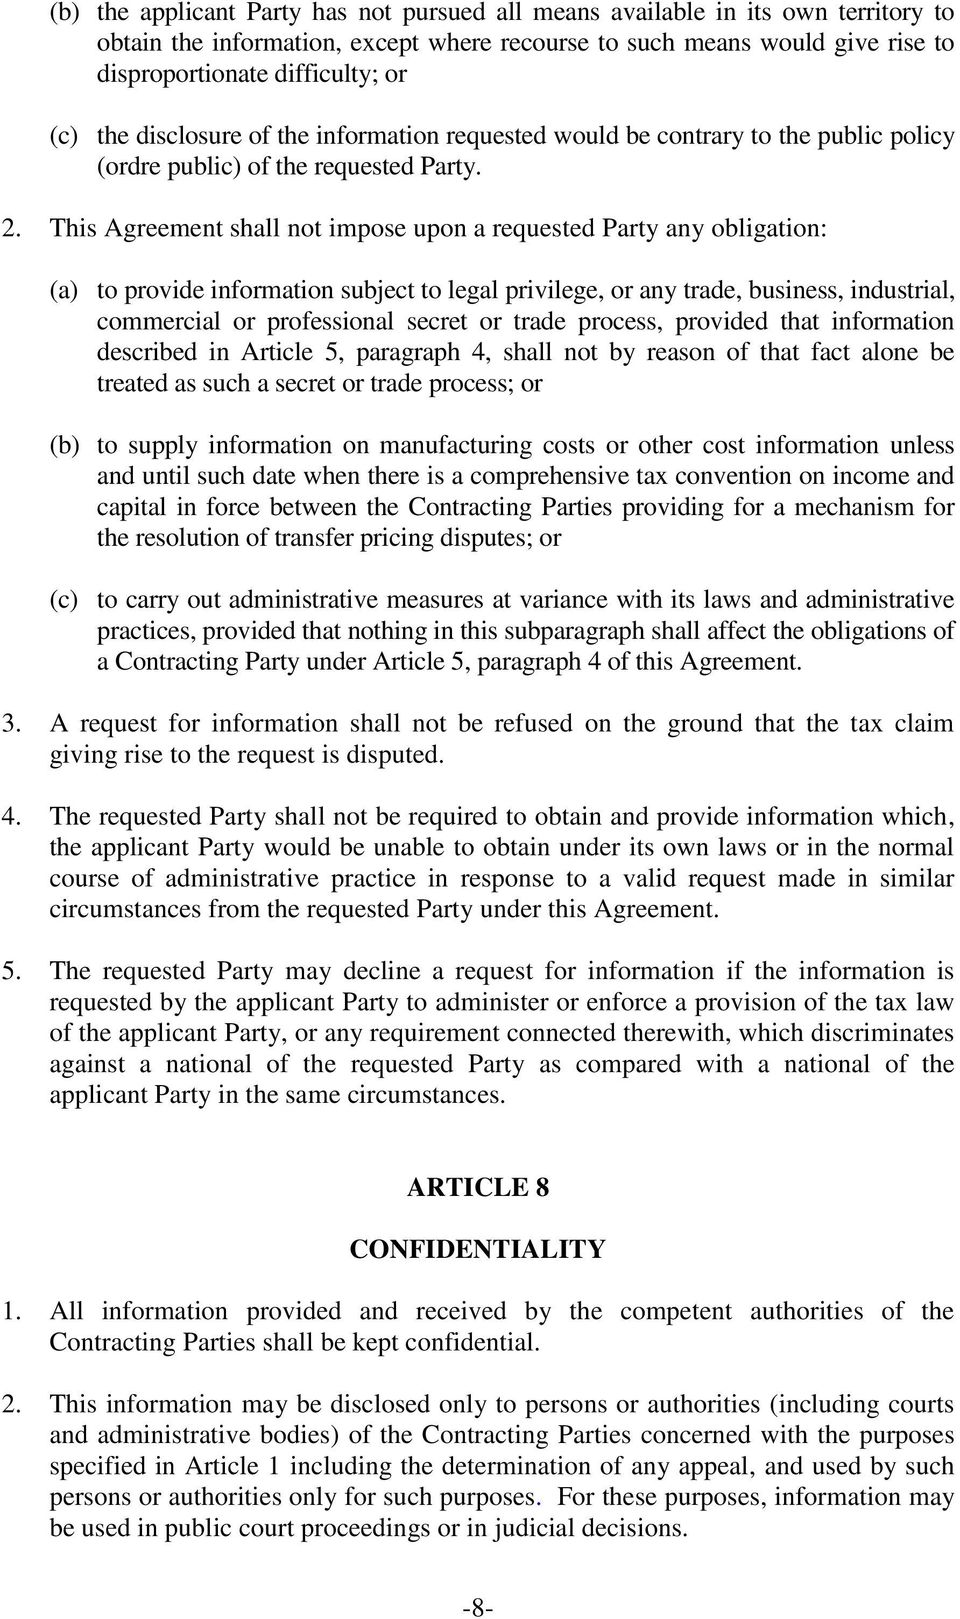 This Agreement shall not impose upon a requested Party any obligation: (a) to provide information subject to legal privilege, or any trade, business, industrial, commercial or professional secret or